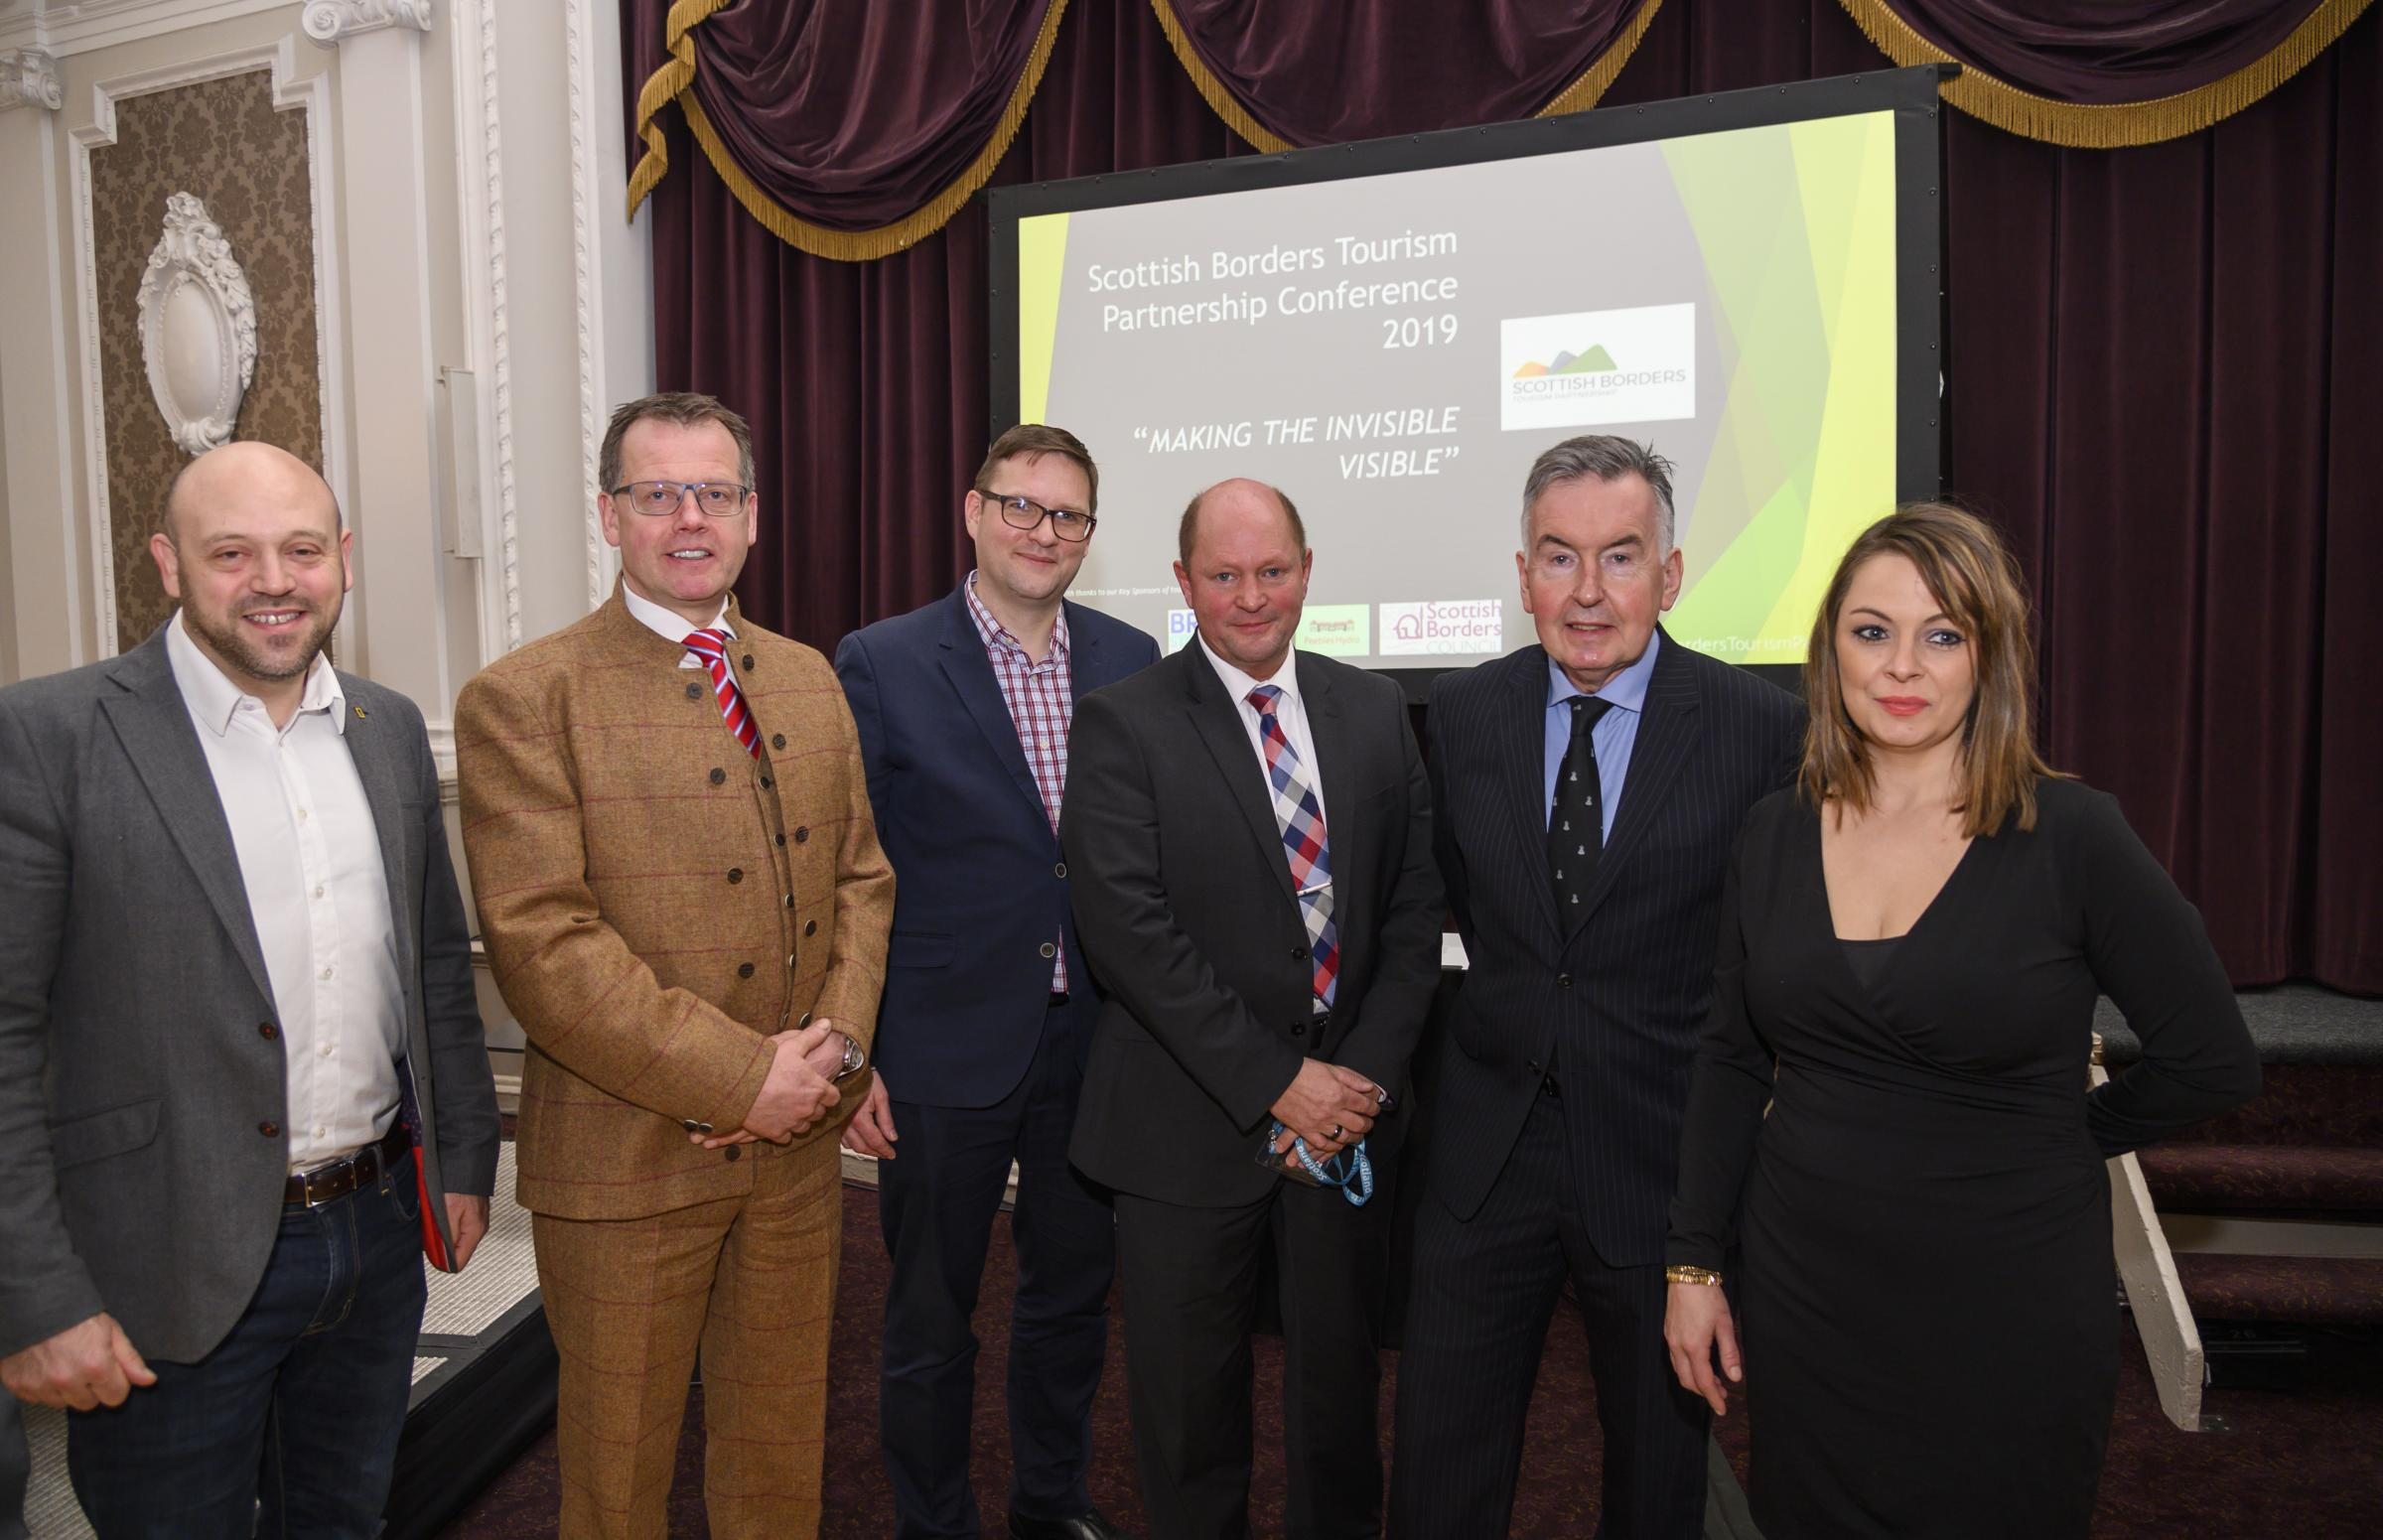 More than 100 businesses attended the tourism conference in Peebles. Photo: Phil Wilkinson